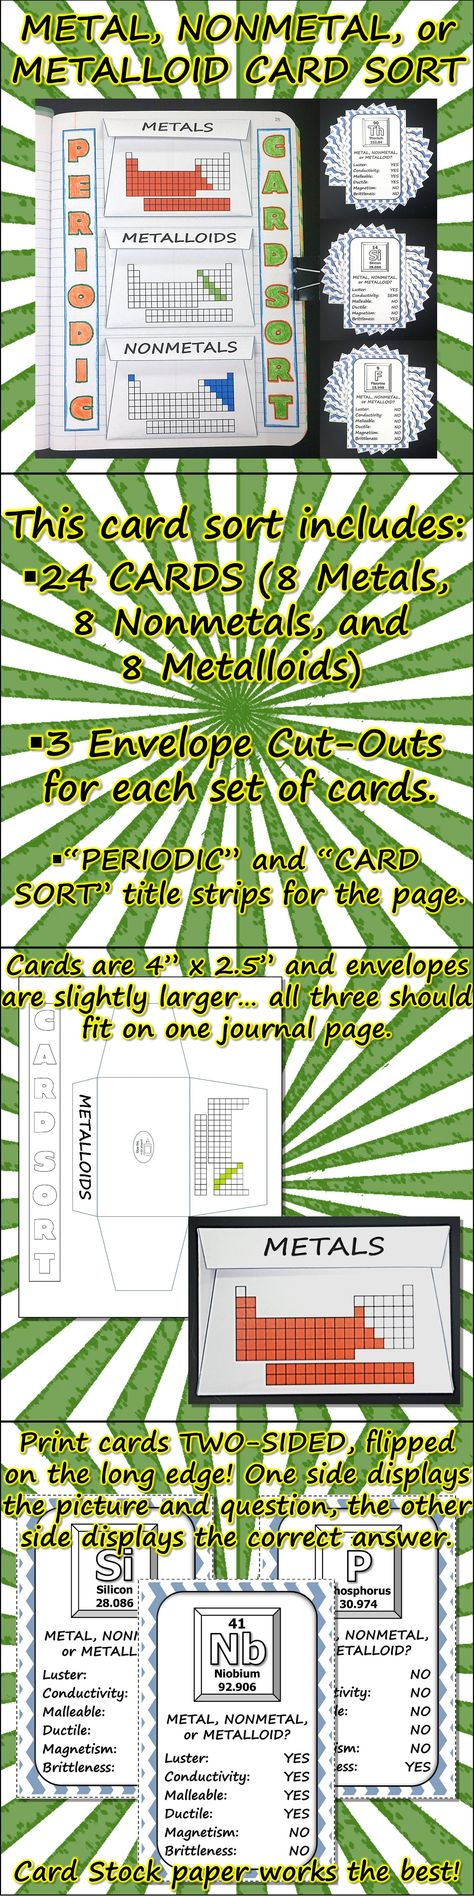 Science journal metal nonmetal and metalloid card sort science journal metal nonmetal and metalloid card sort gamestrikefo Images